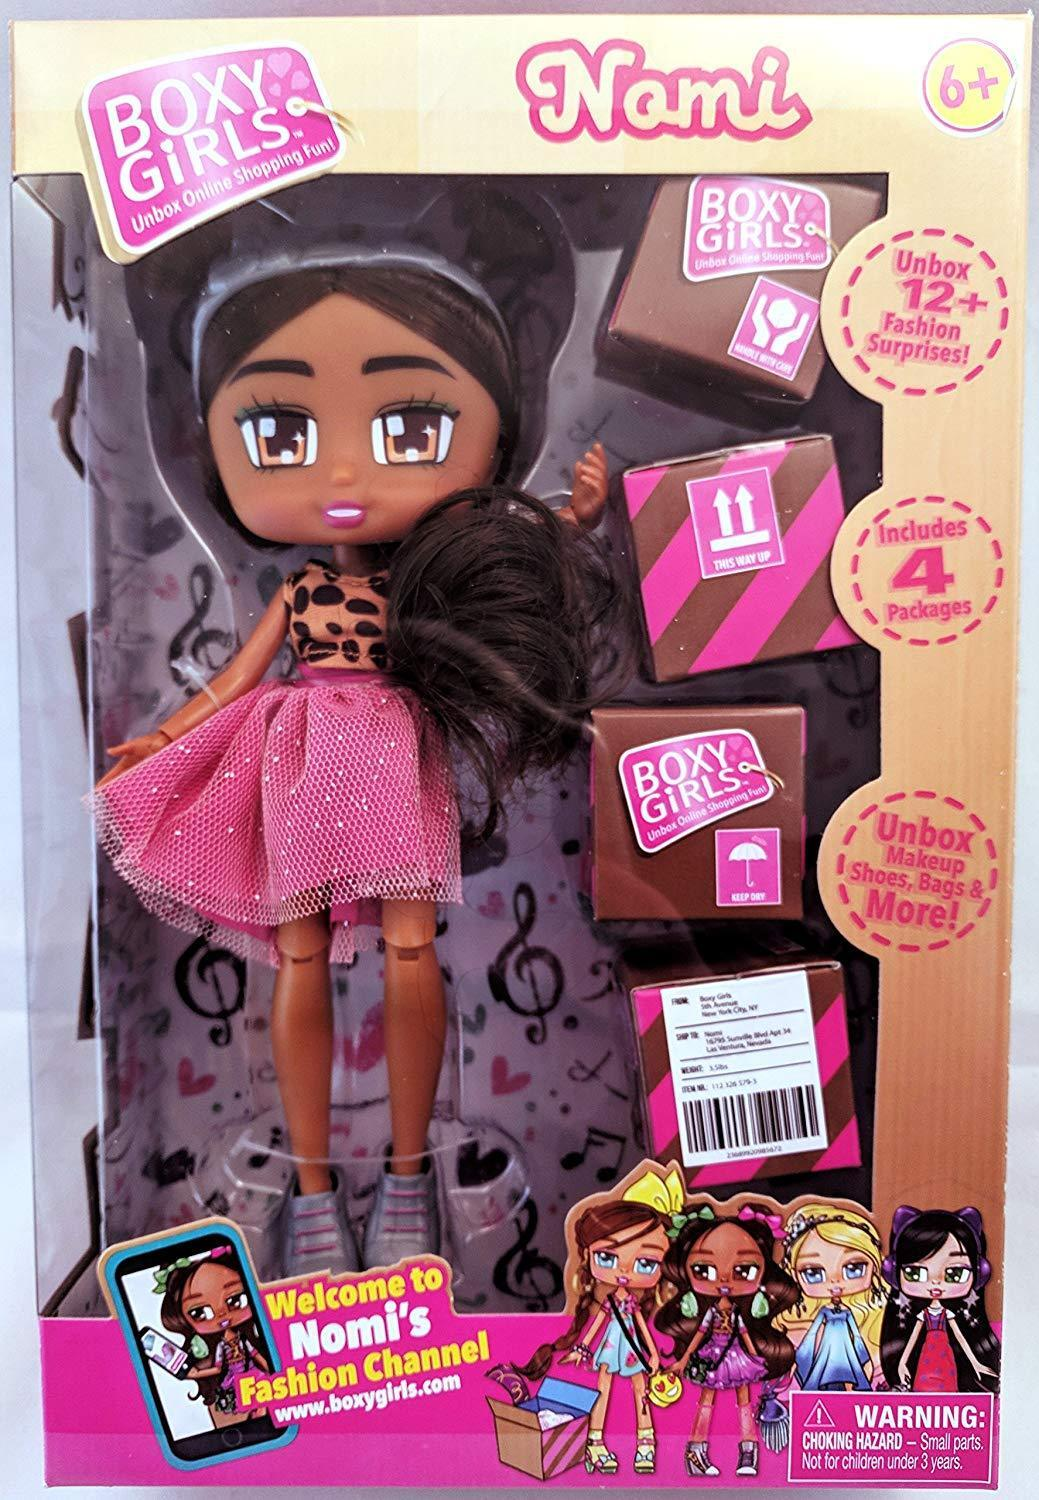 BOXY GIRLS FASHION PACK INCLUDES 6 PACKAGES  NEW IN BOX